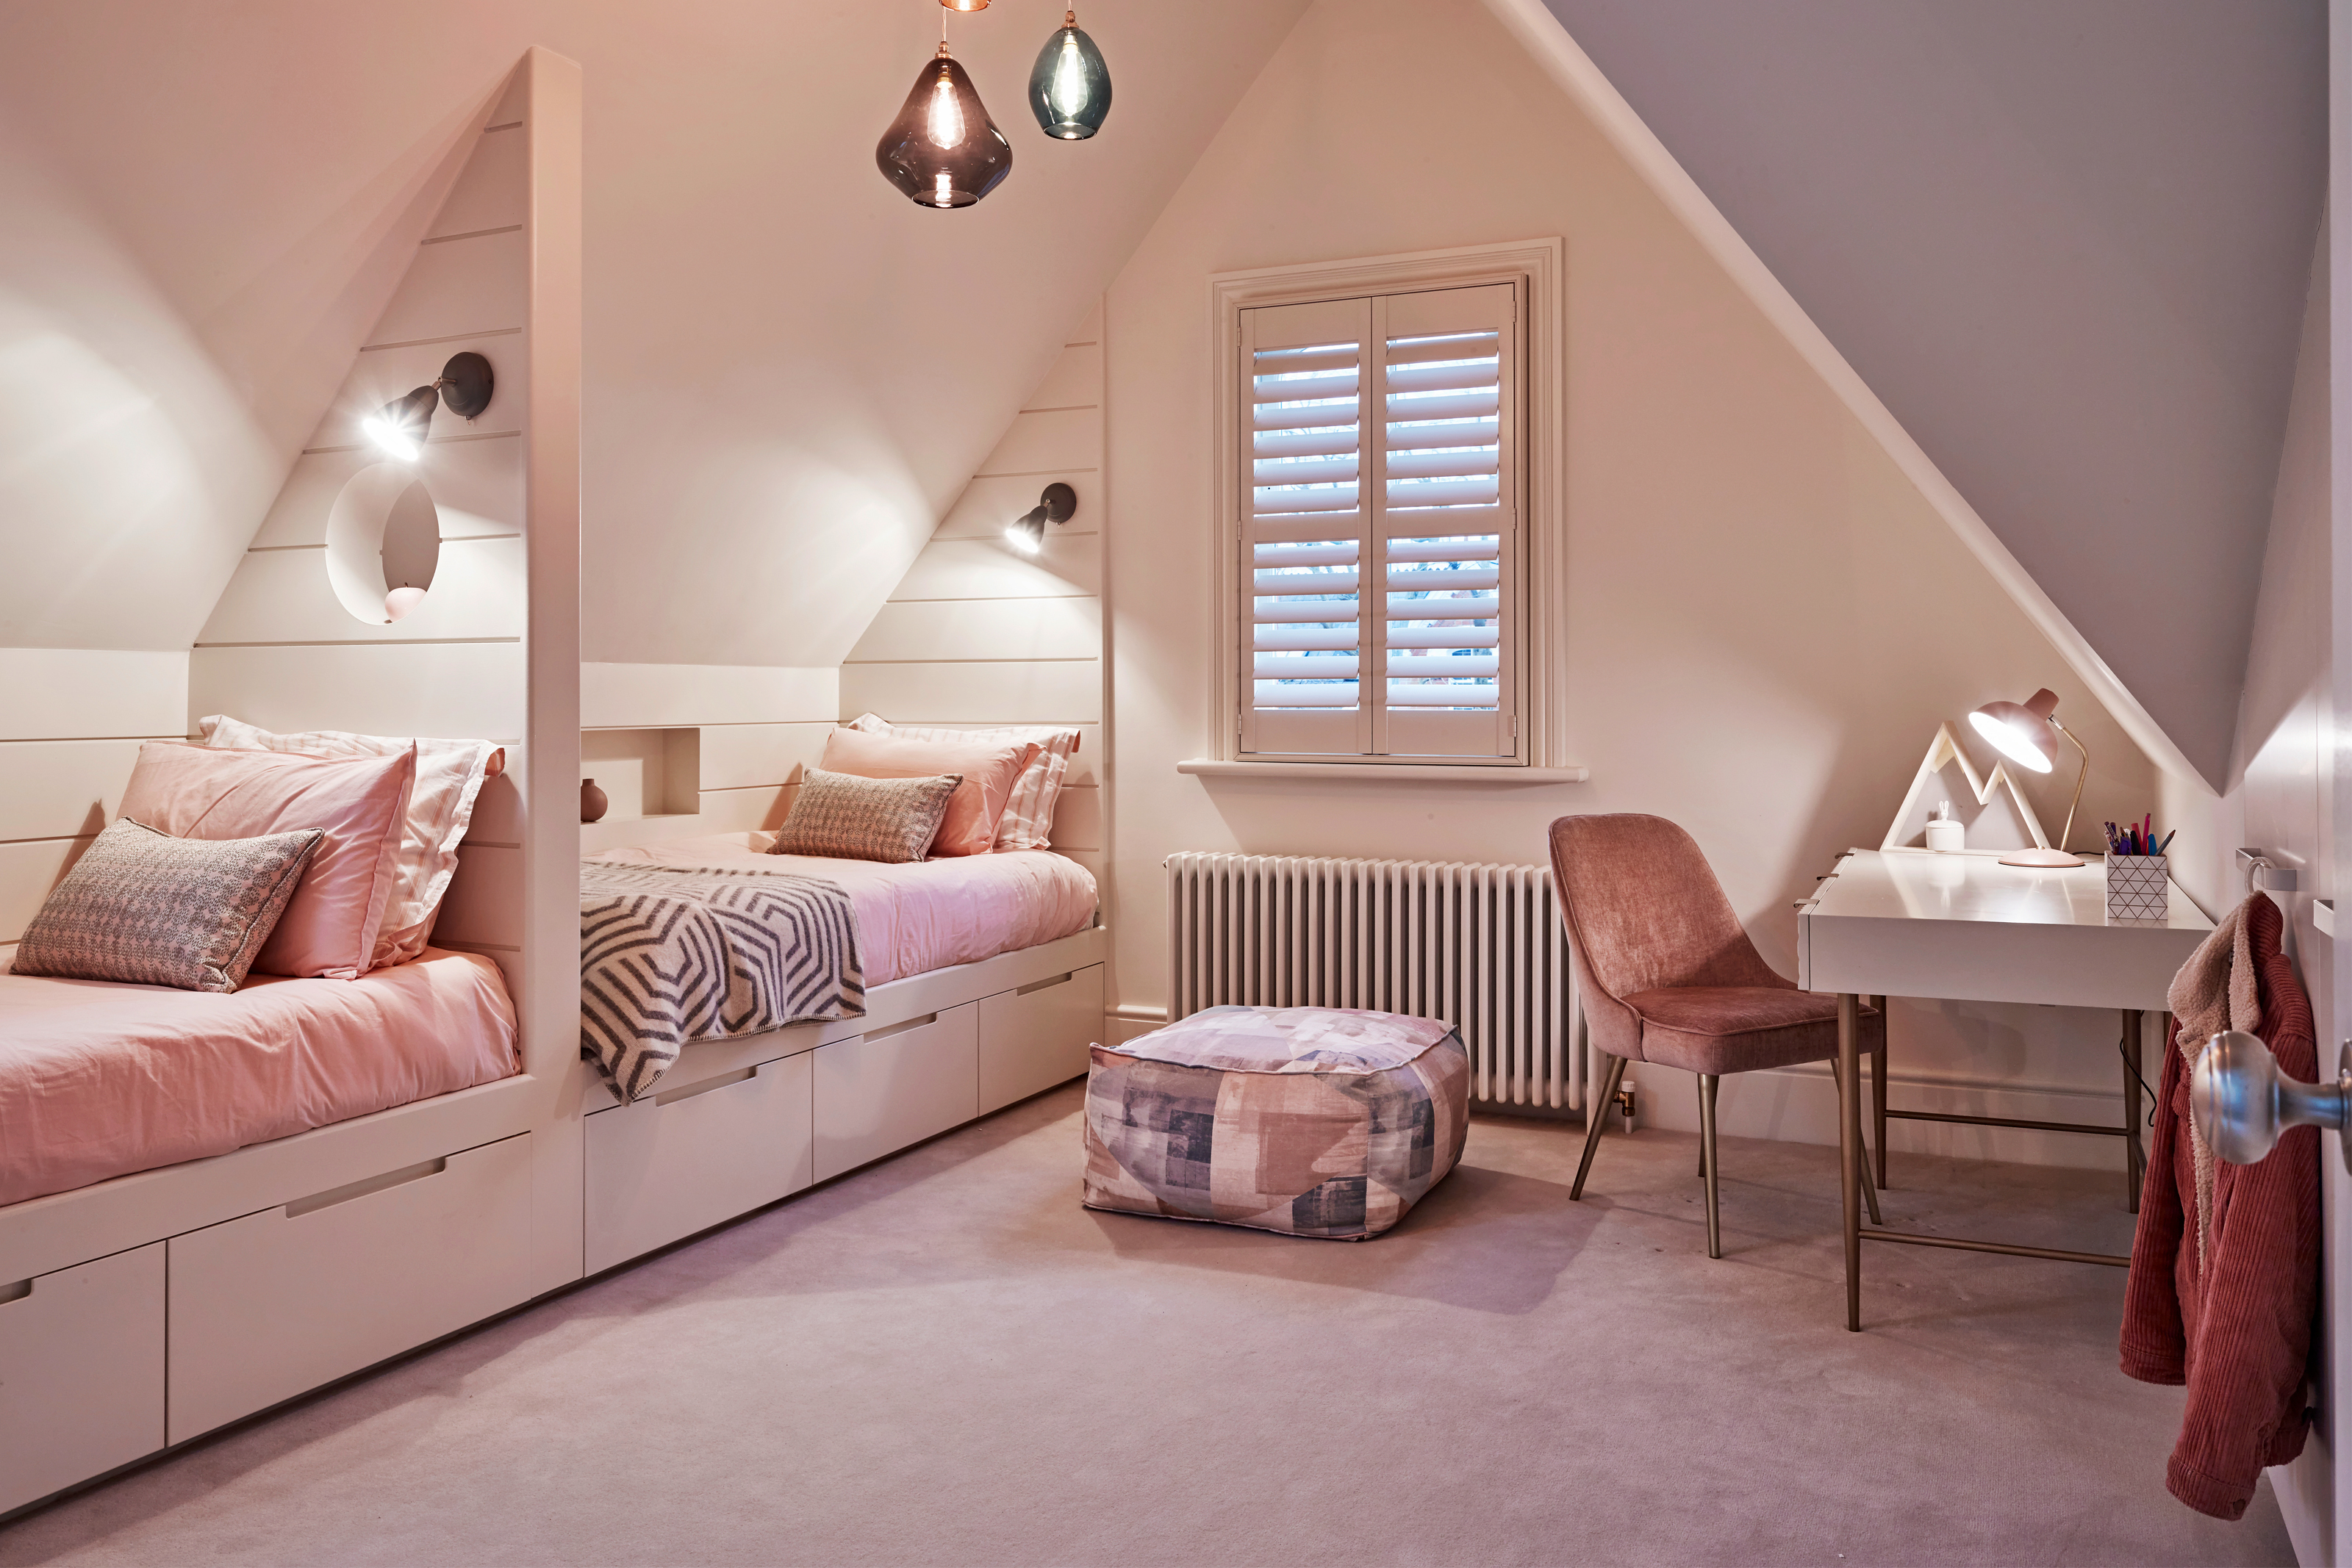 7 Helpful Tips for Turning Your Attic into a Living Space